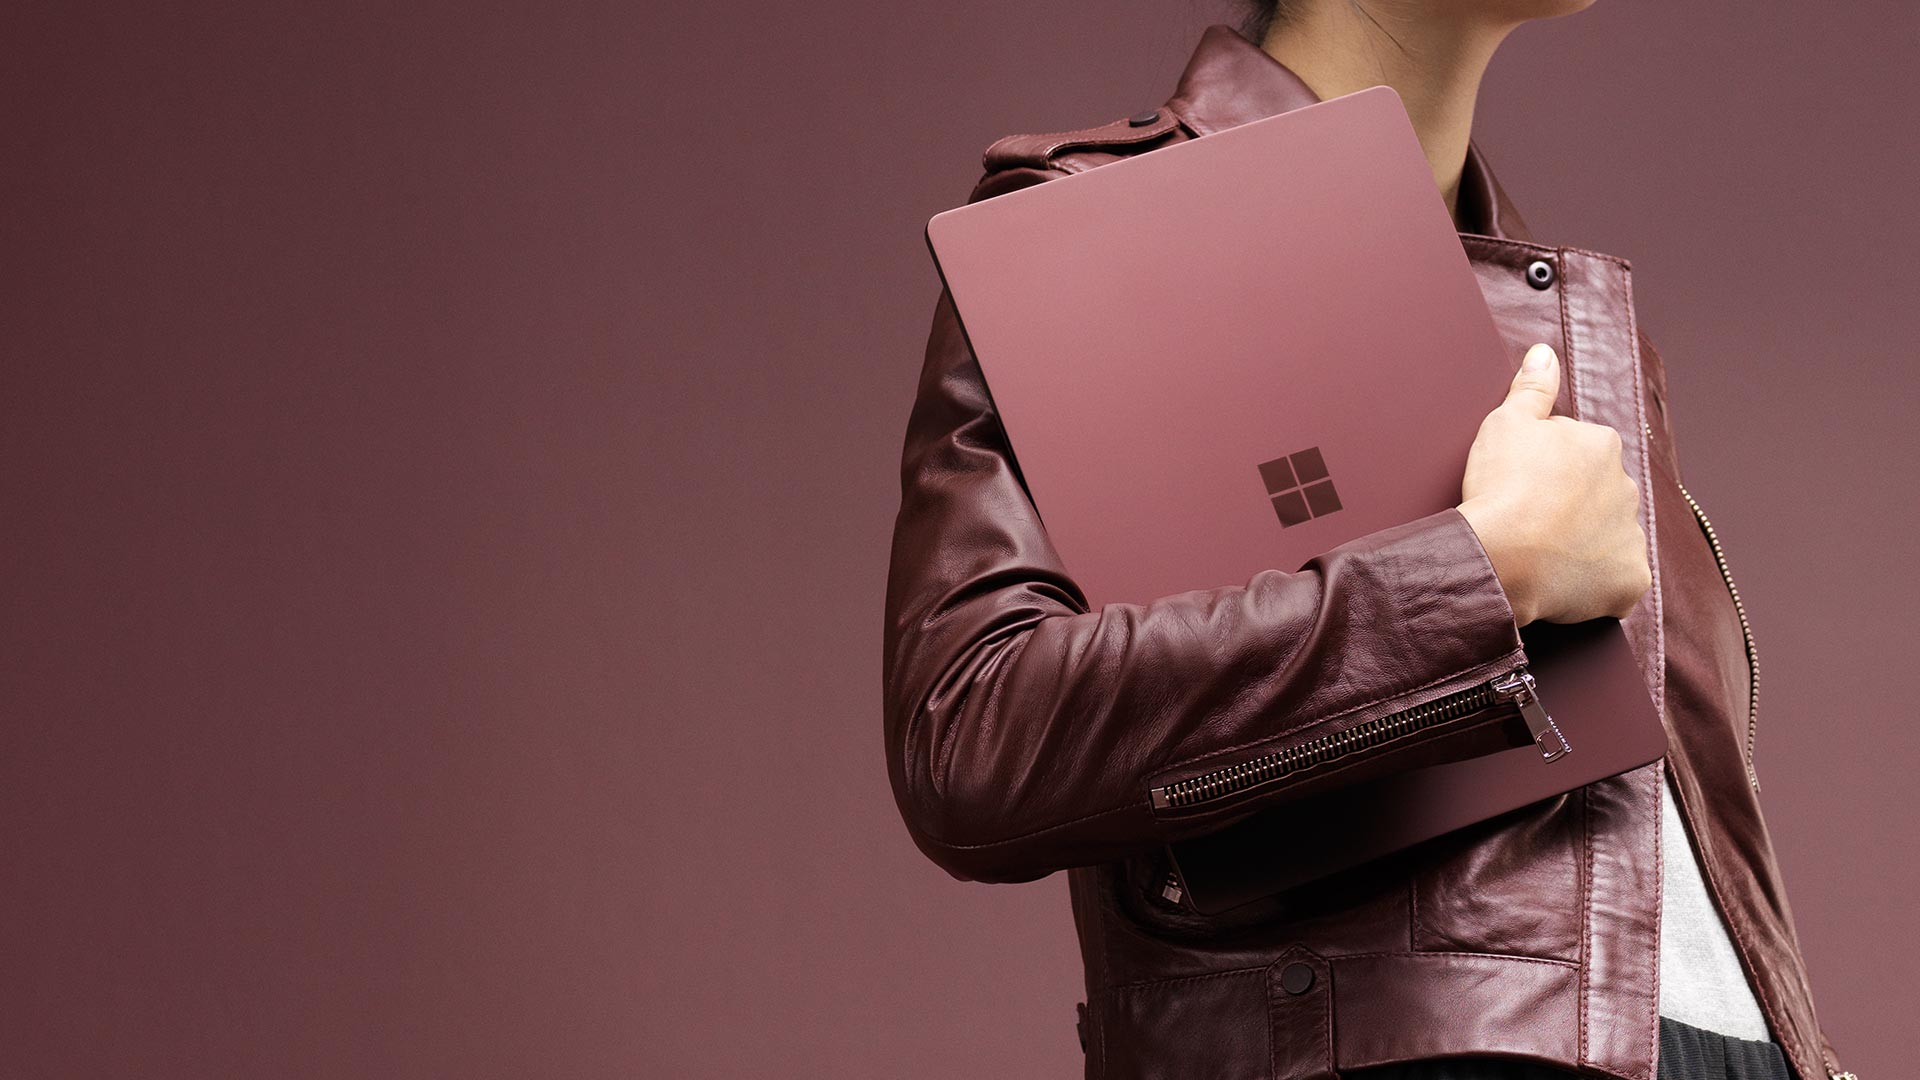 Frau mit Surface Laptop in Bordeaux Rot